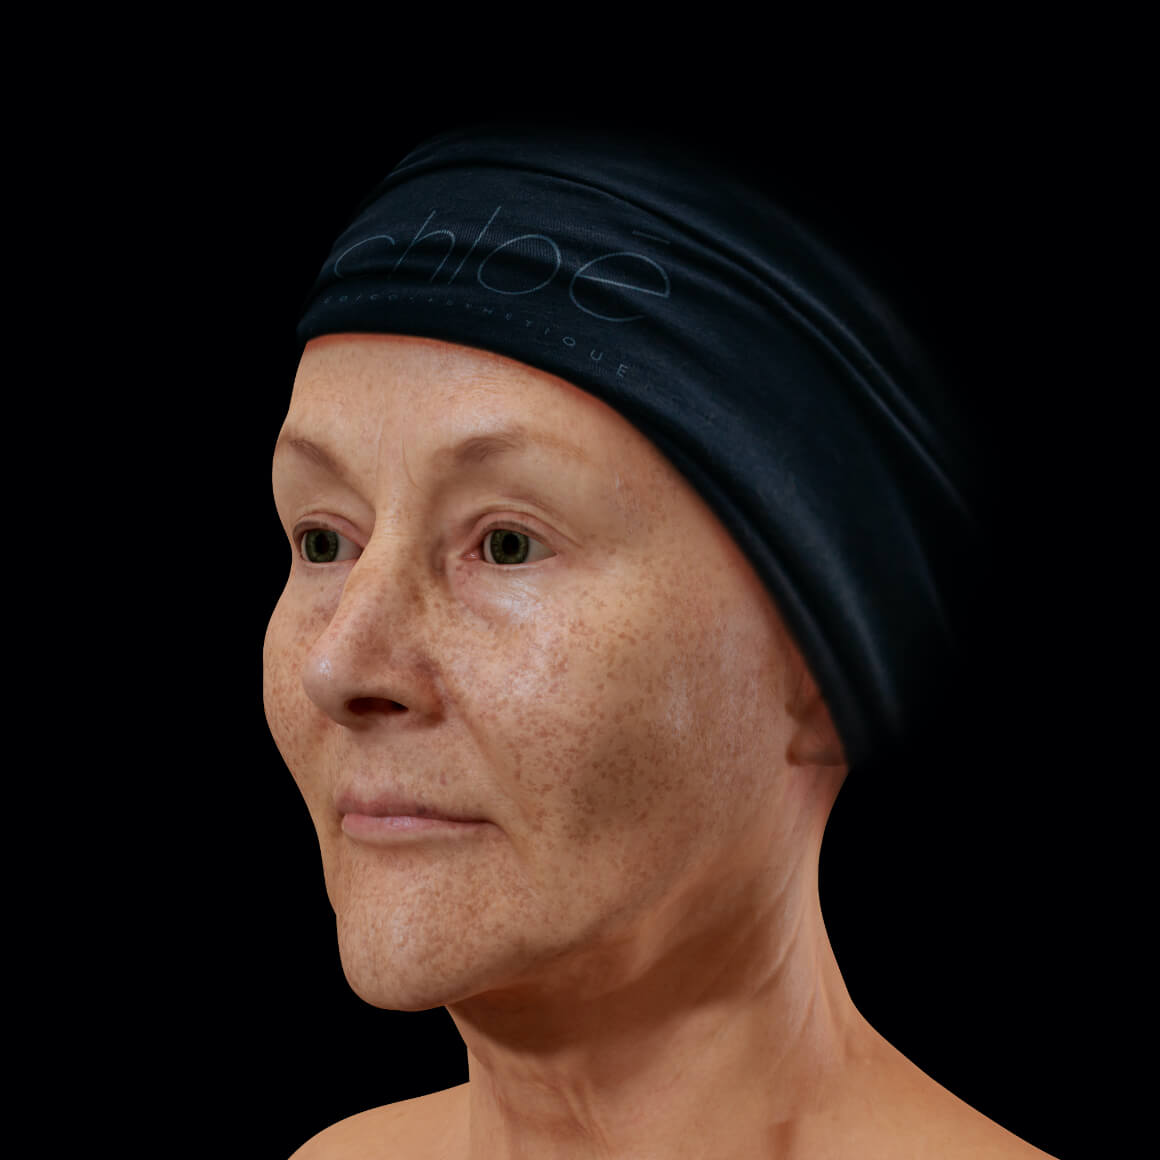 A female patient from Clinique Chloé positioned at an angle with pigmented lesions, or dark spots, on her entire face